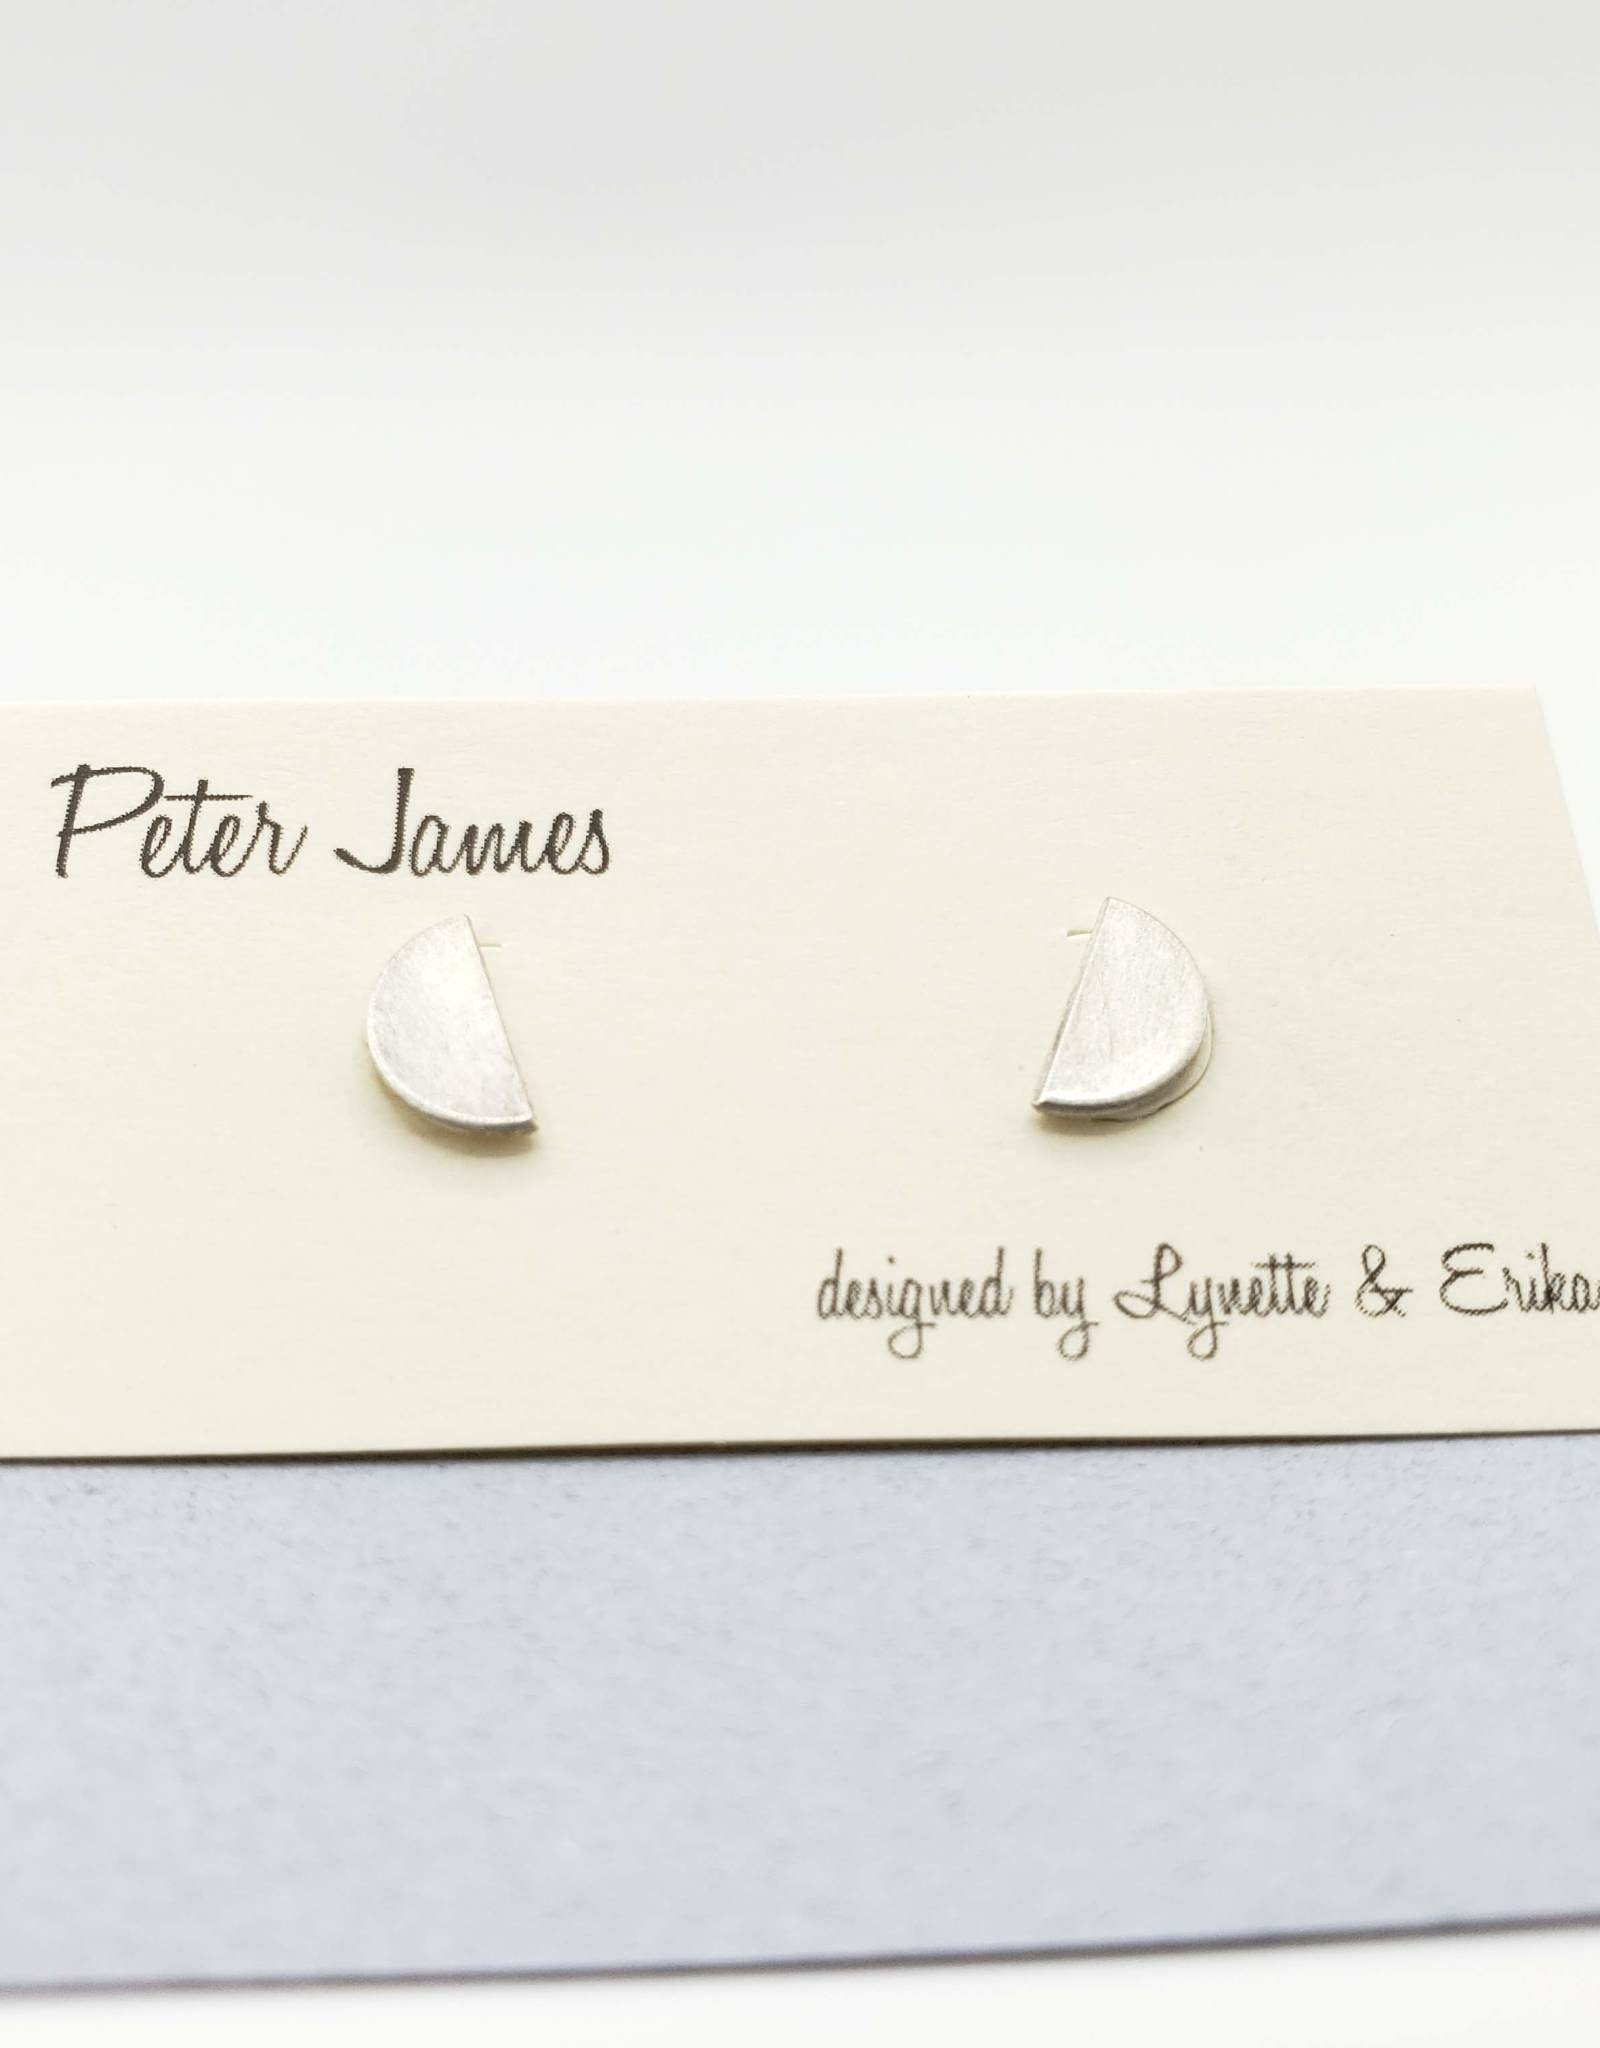 Peter James Jewelry Half Circle Stud Earrings, Sterling Silver - Peter James Jewelry